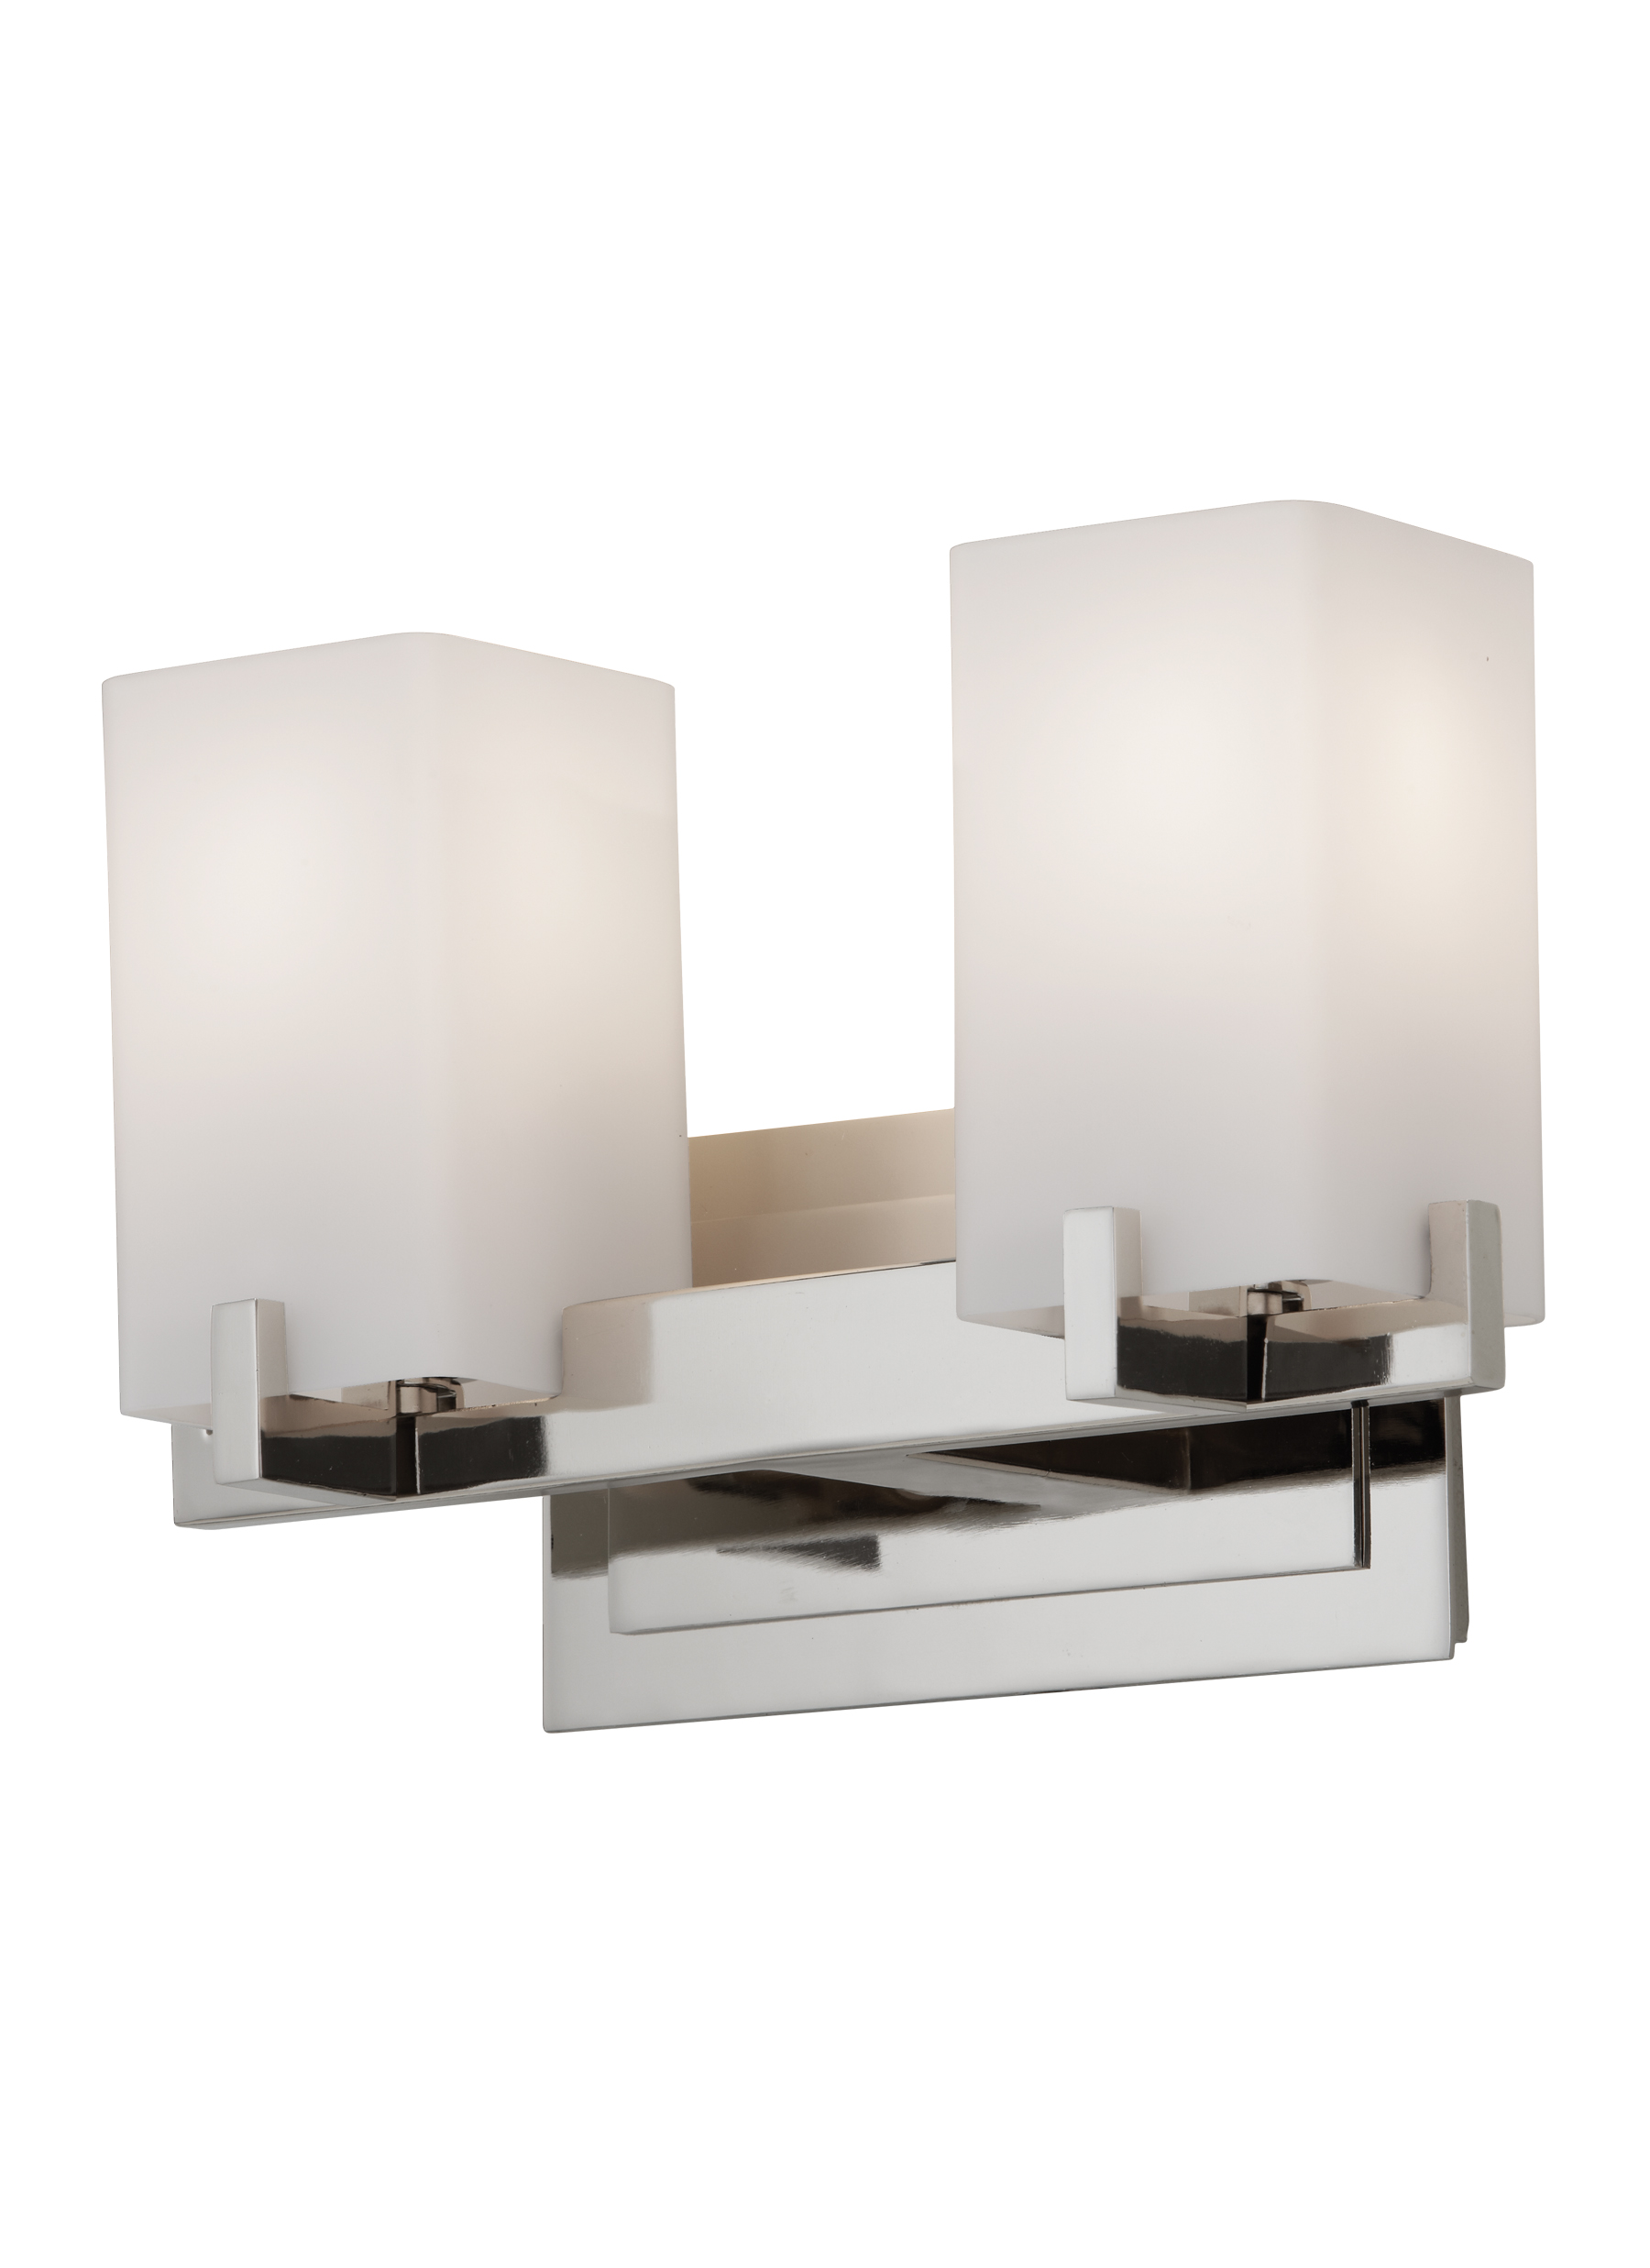 VS18402-PN,2 - Light Vanity Fixture,Polished Nickel